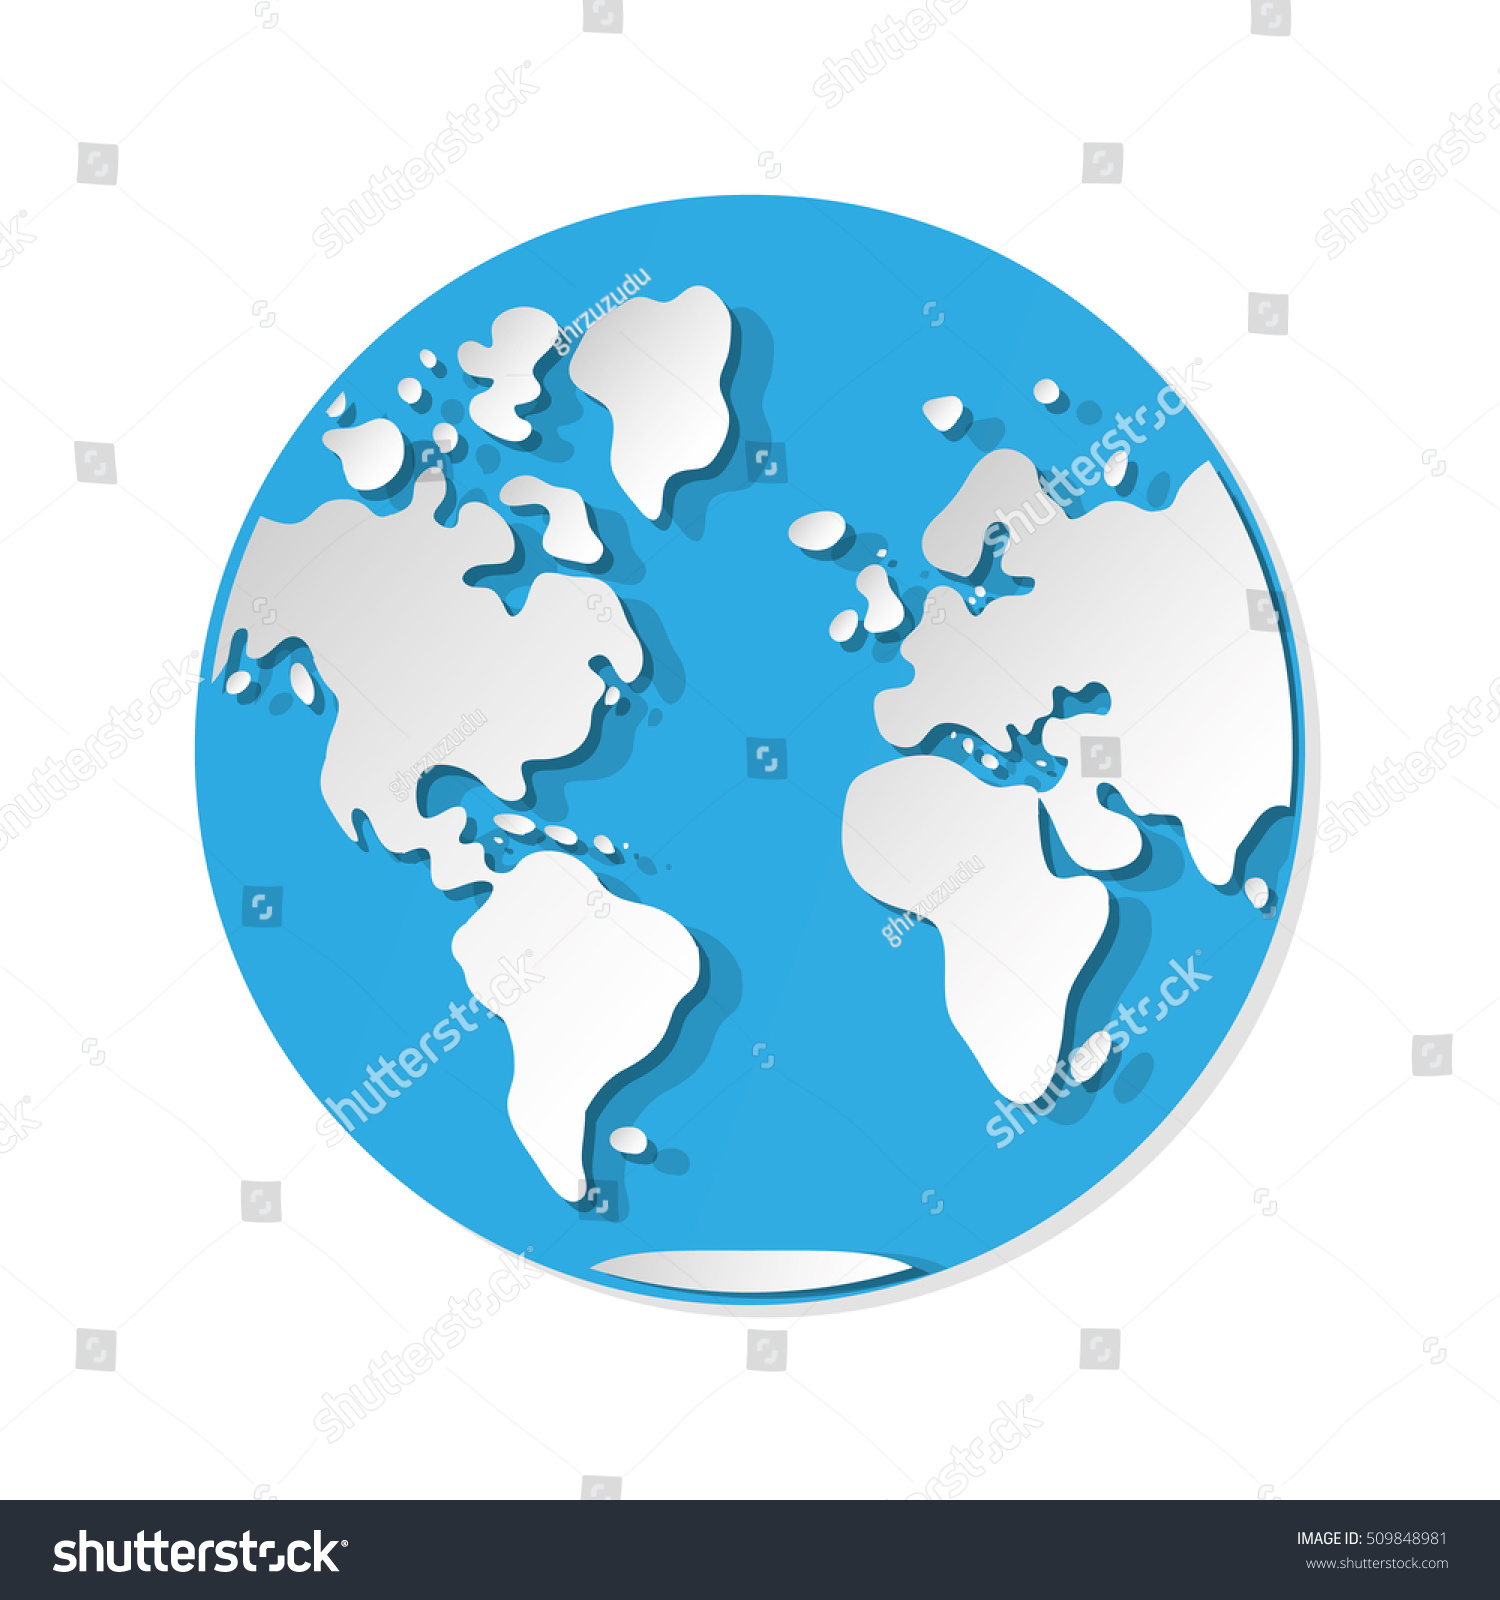 World map western hemisphere globe icon stock vector 509848981 world map western hemisphere globe icon stock vector 509848981 shutterstock gumiabroncs Images